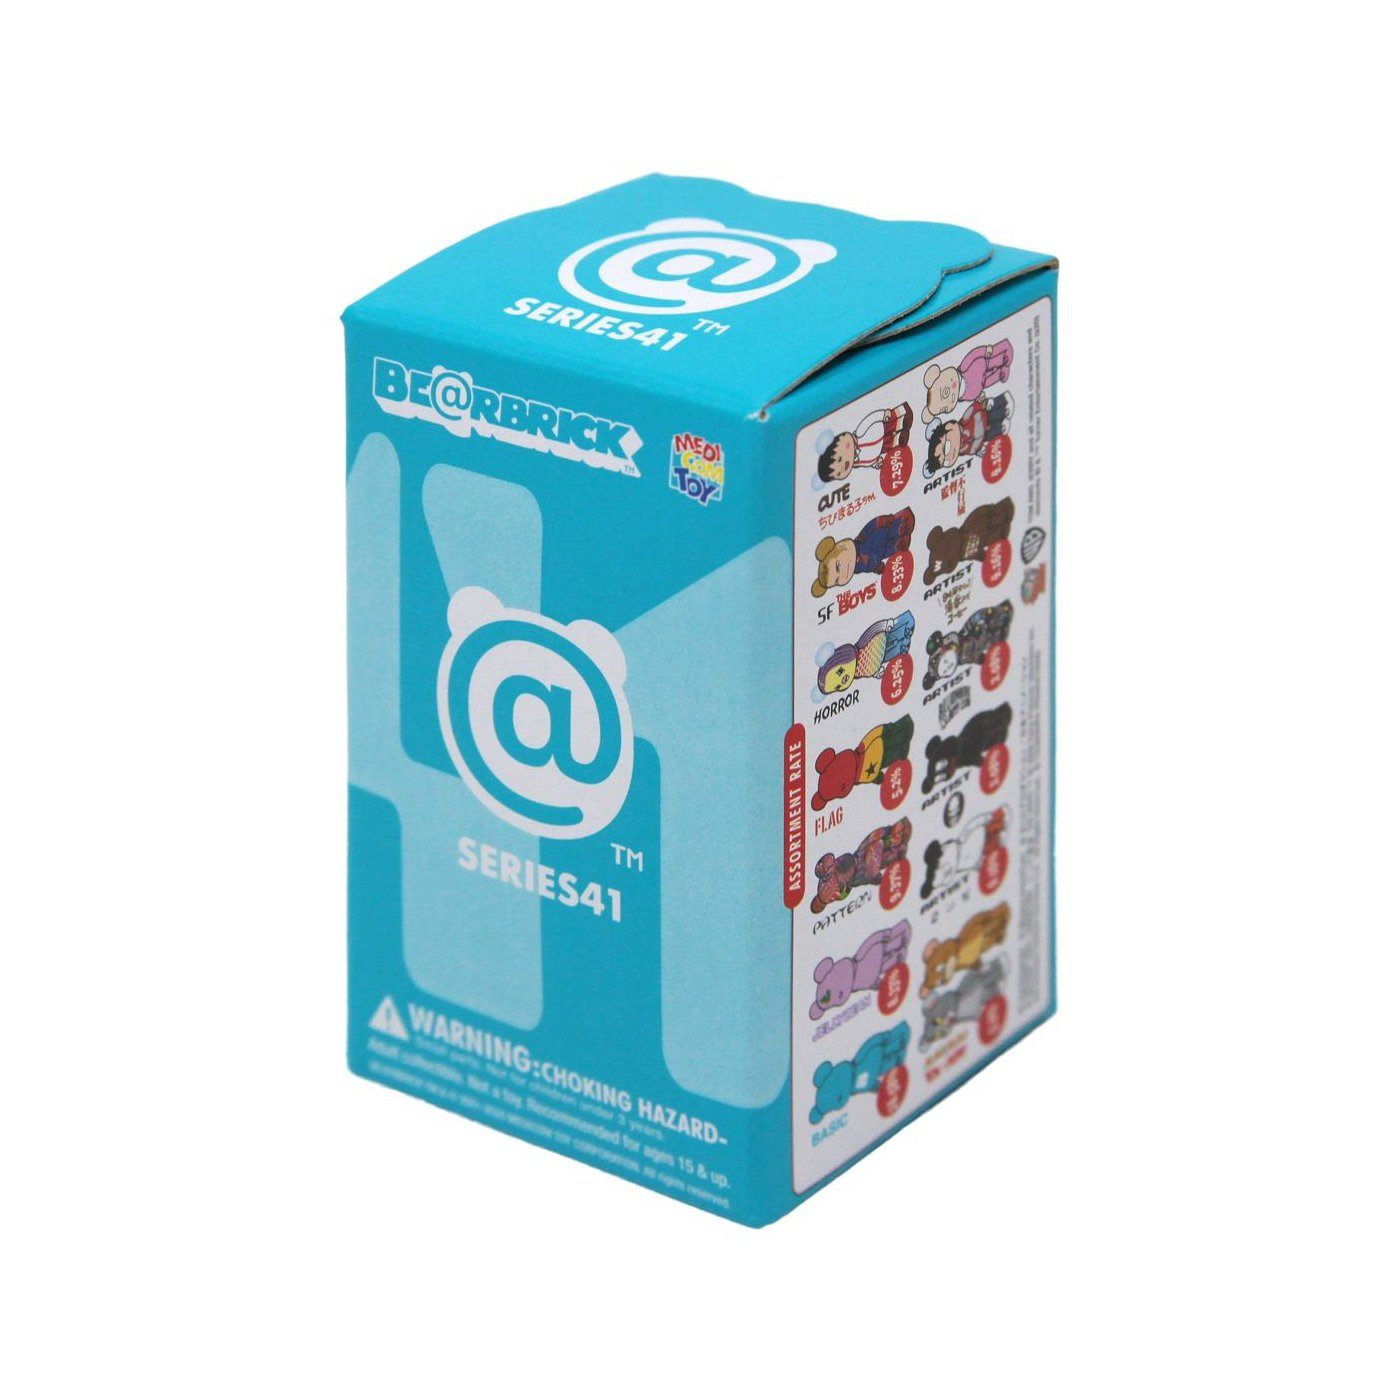 BE@RBRICK Series 41 Blind Box by Medicom Toy 100% Bearbrick Blind Box Medicom Toy Full Case of 24